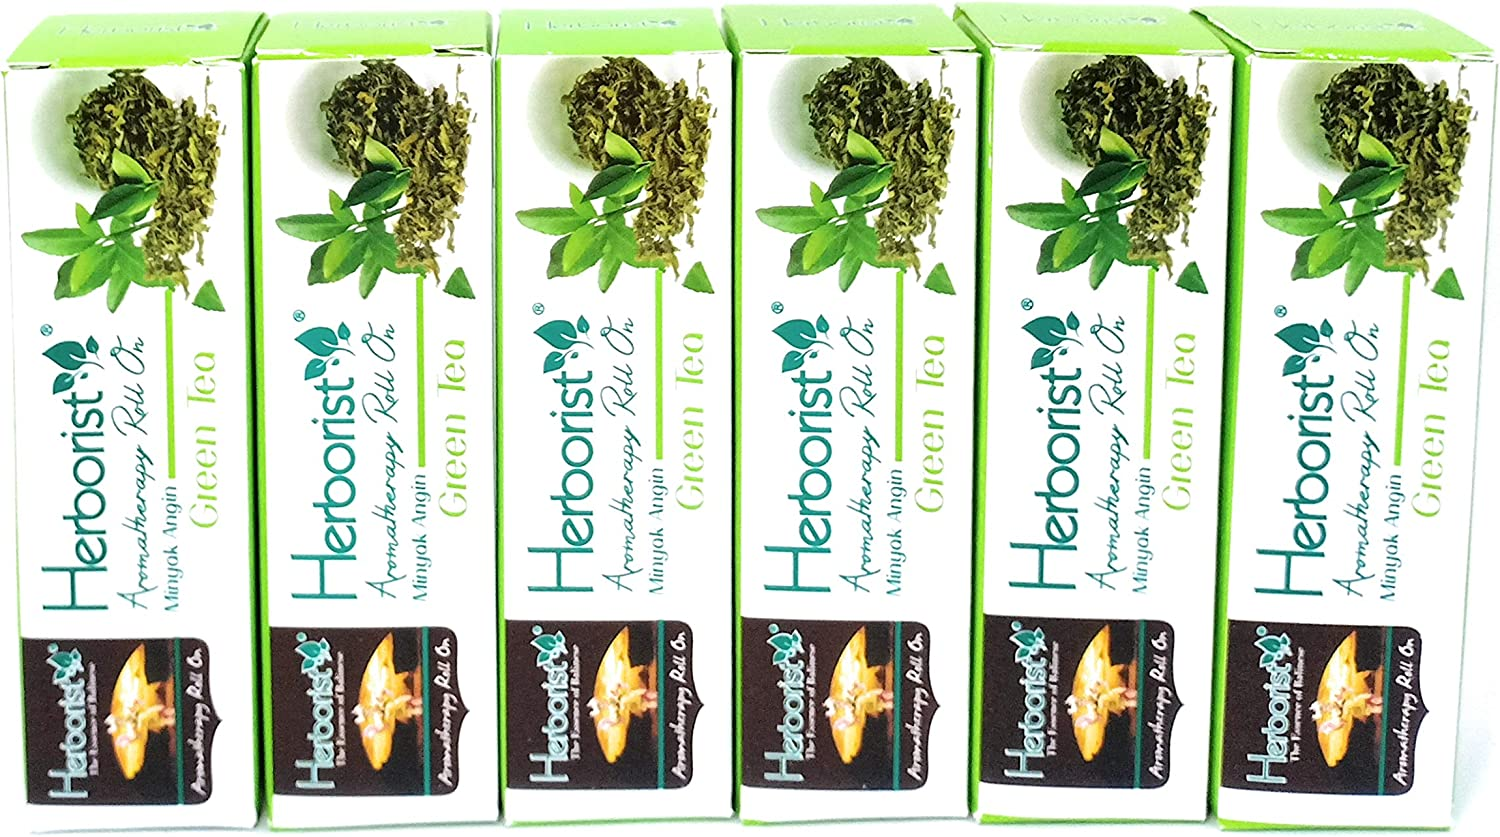 Herborist Aromatherapy Roll on Oil - Green ml Pack 6 10 of Over item handling ☆ Tea Complete Free Shipping